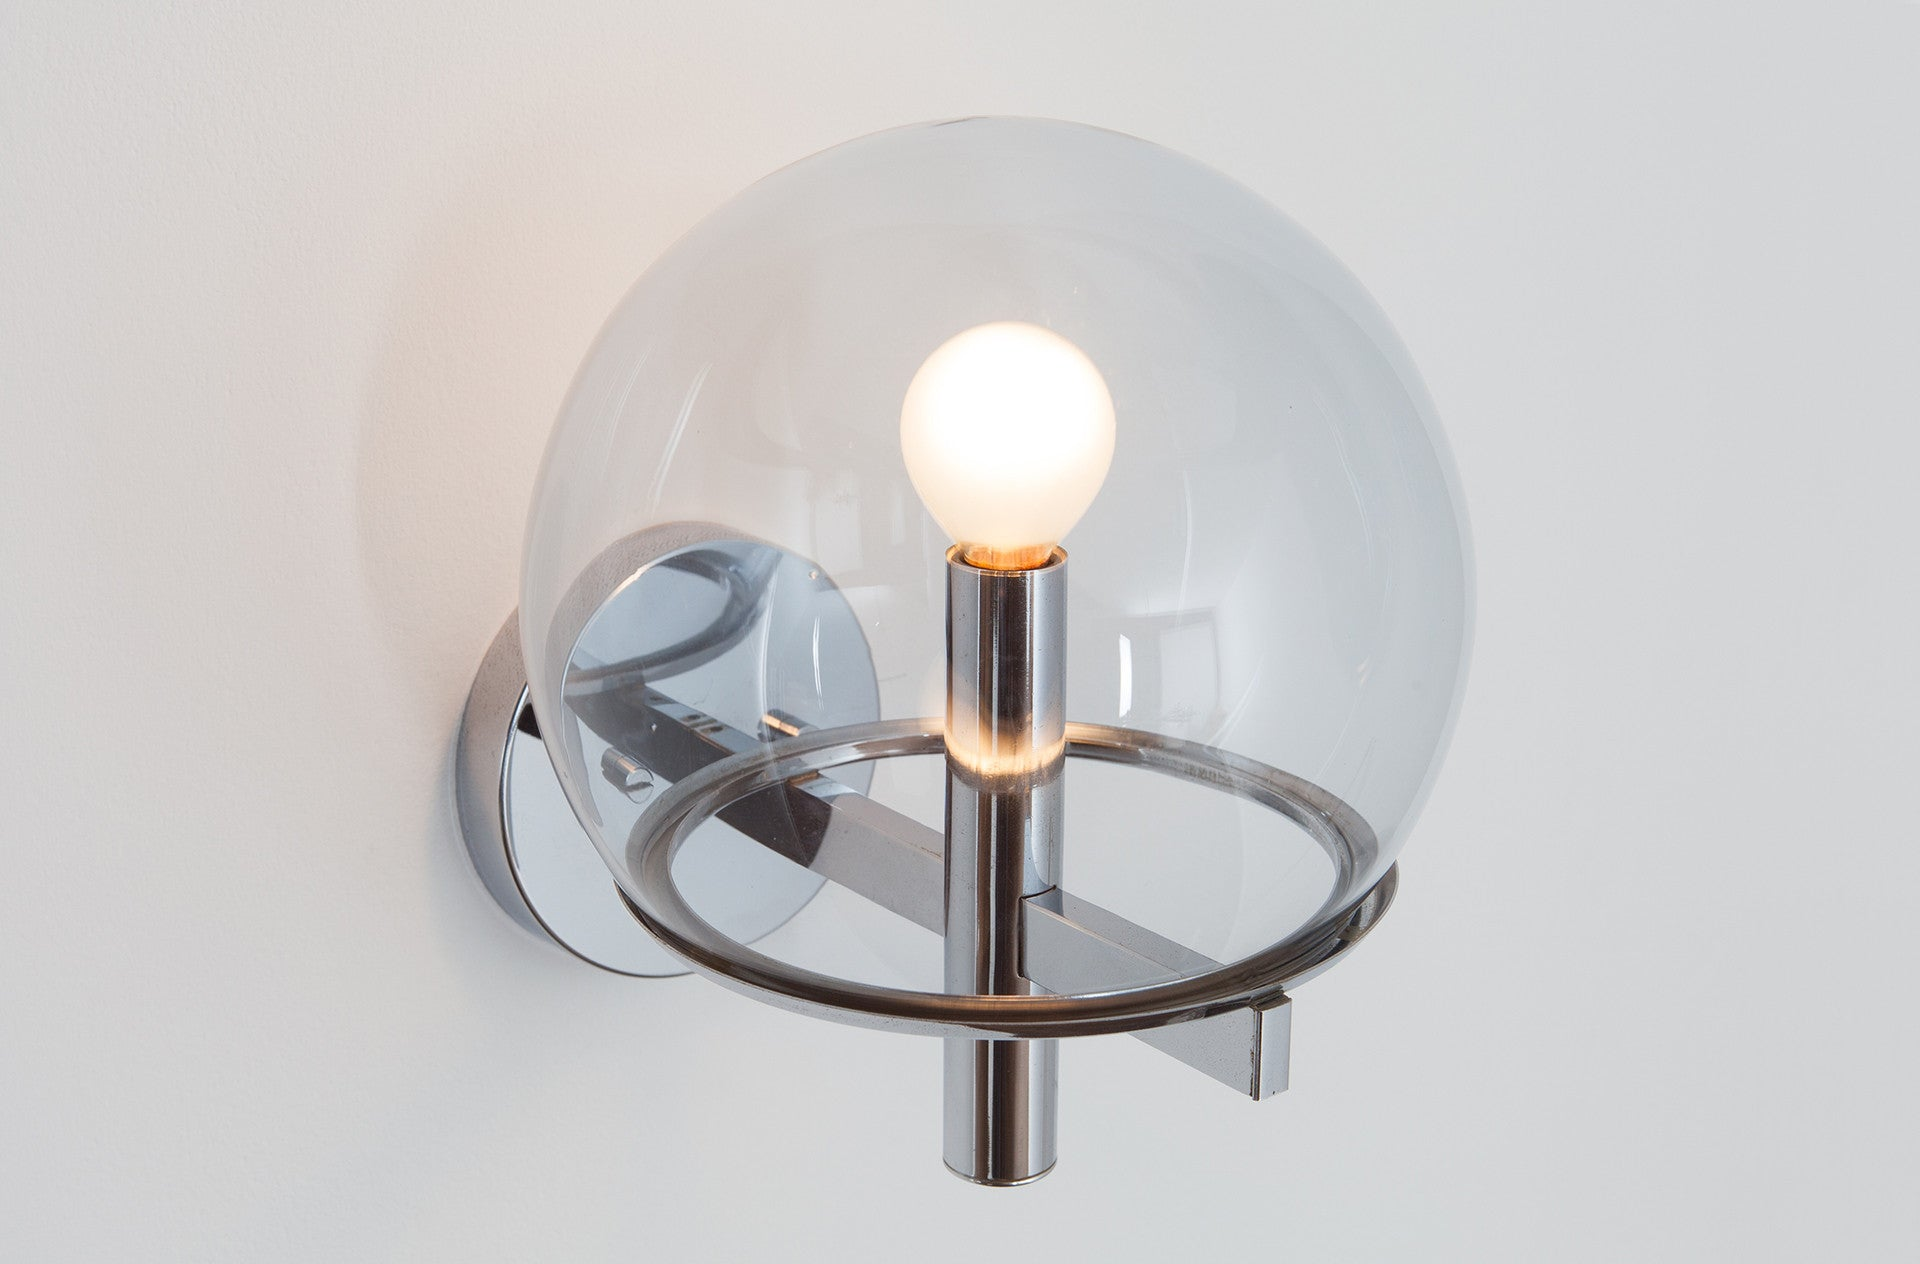 Club wall sconce by Angelo Gaetano Sciolari